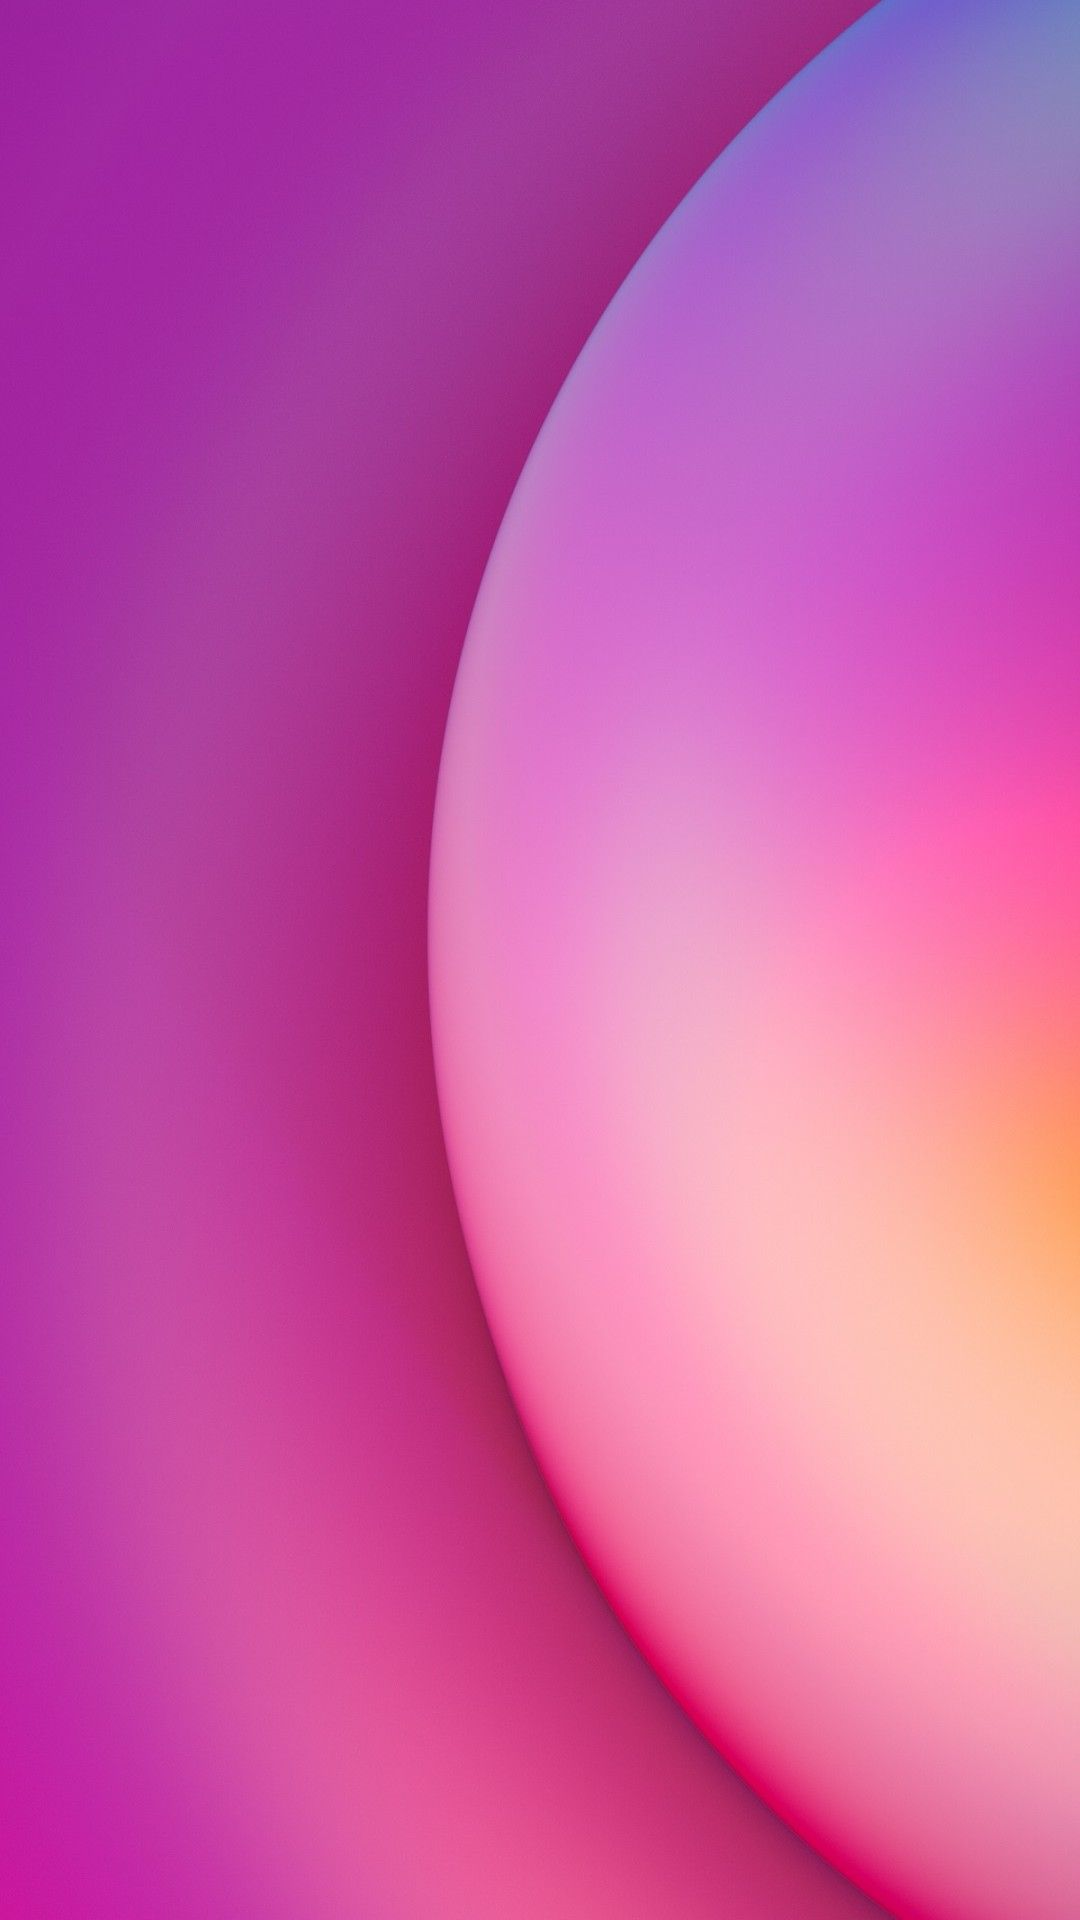 Purple Tap To See More Latest Ios12 Stock Wallpapers Mobile9 Abstract Iphone Wallpaper Apple Wallpaper Abstract Wallpaper Backgrounds